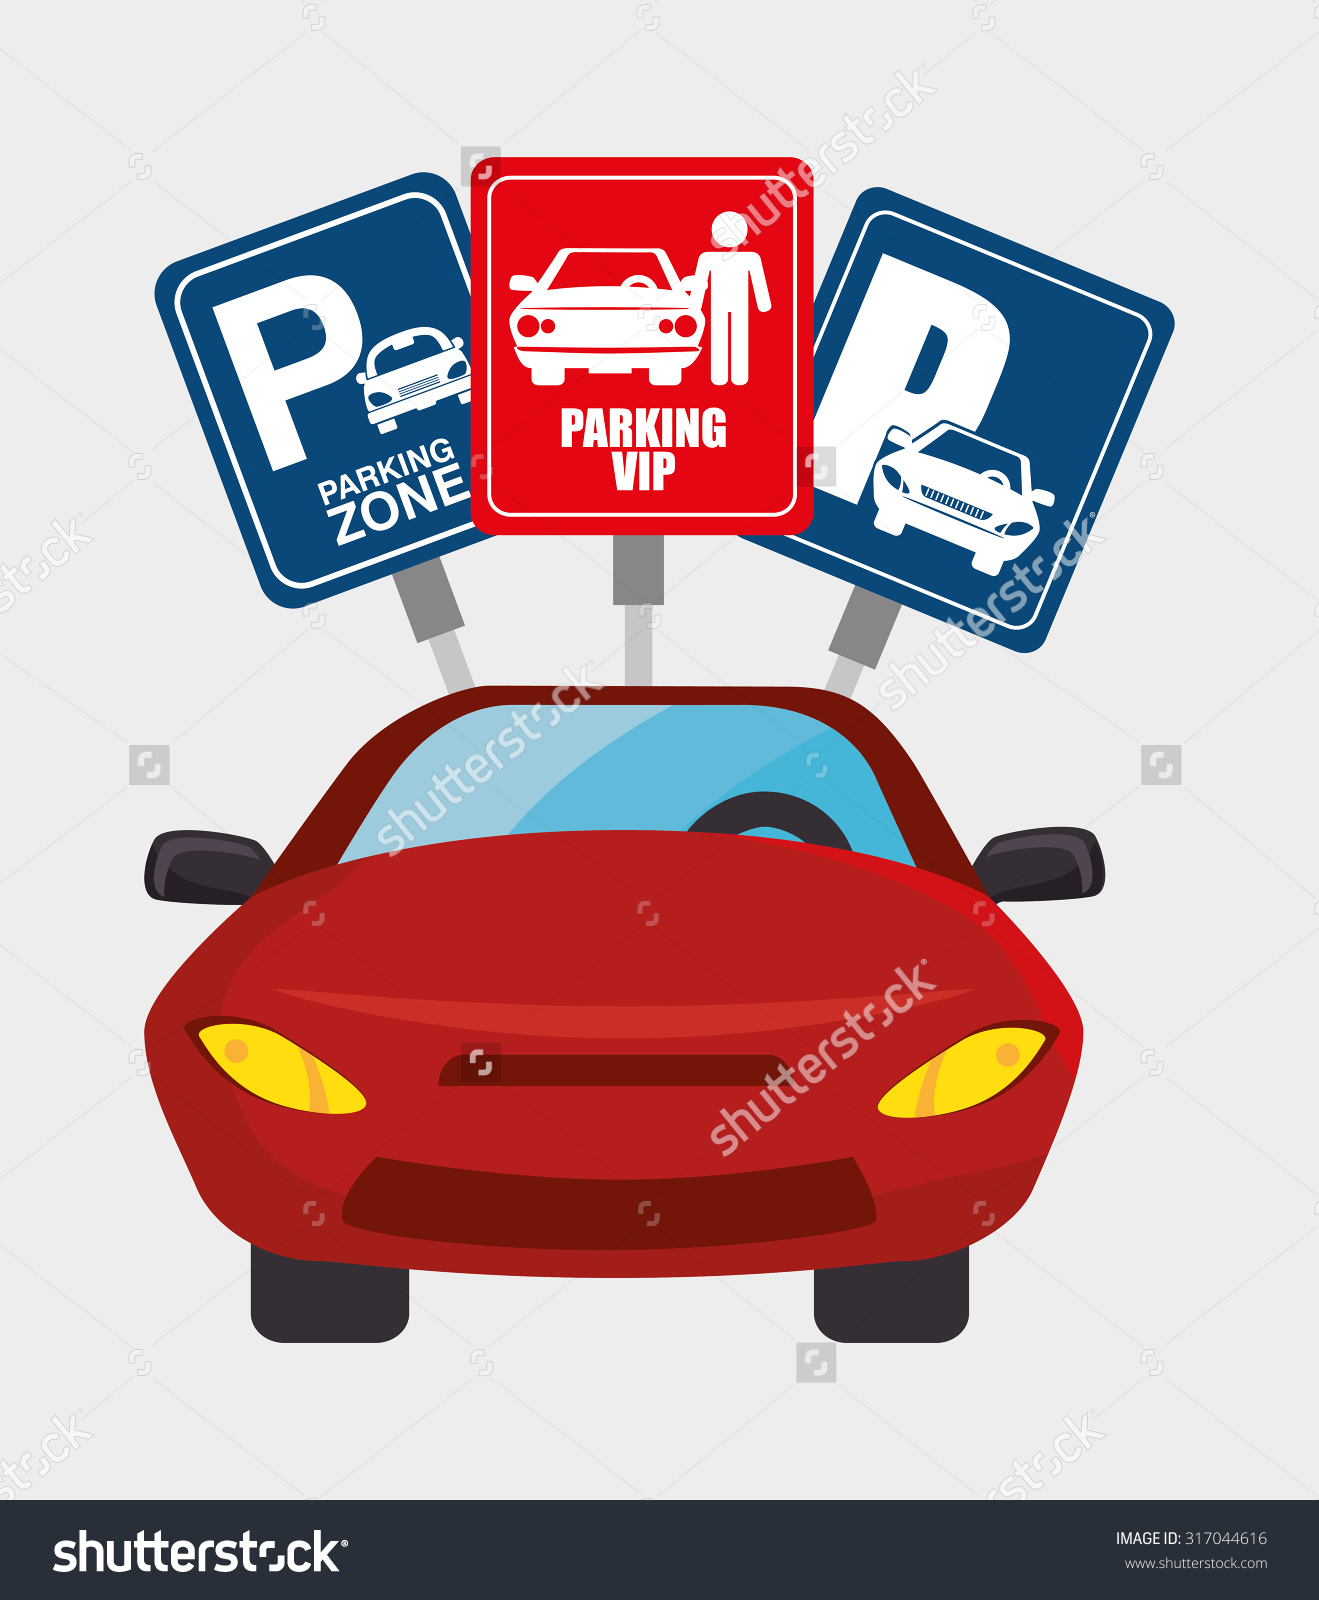 Parking Park Zone Design Vector Illustration Stock Vector.